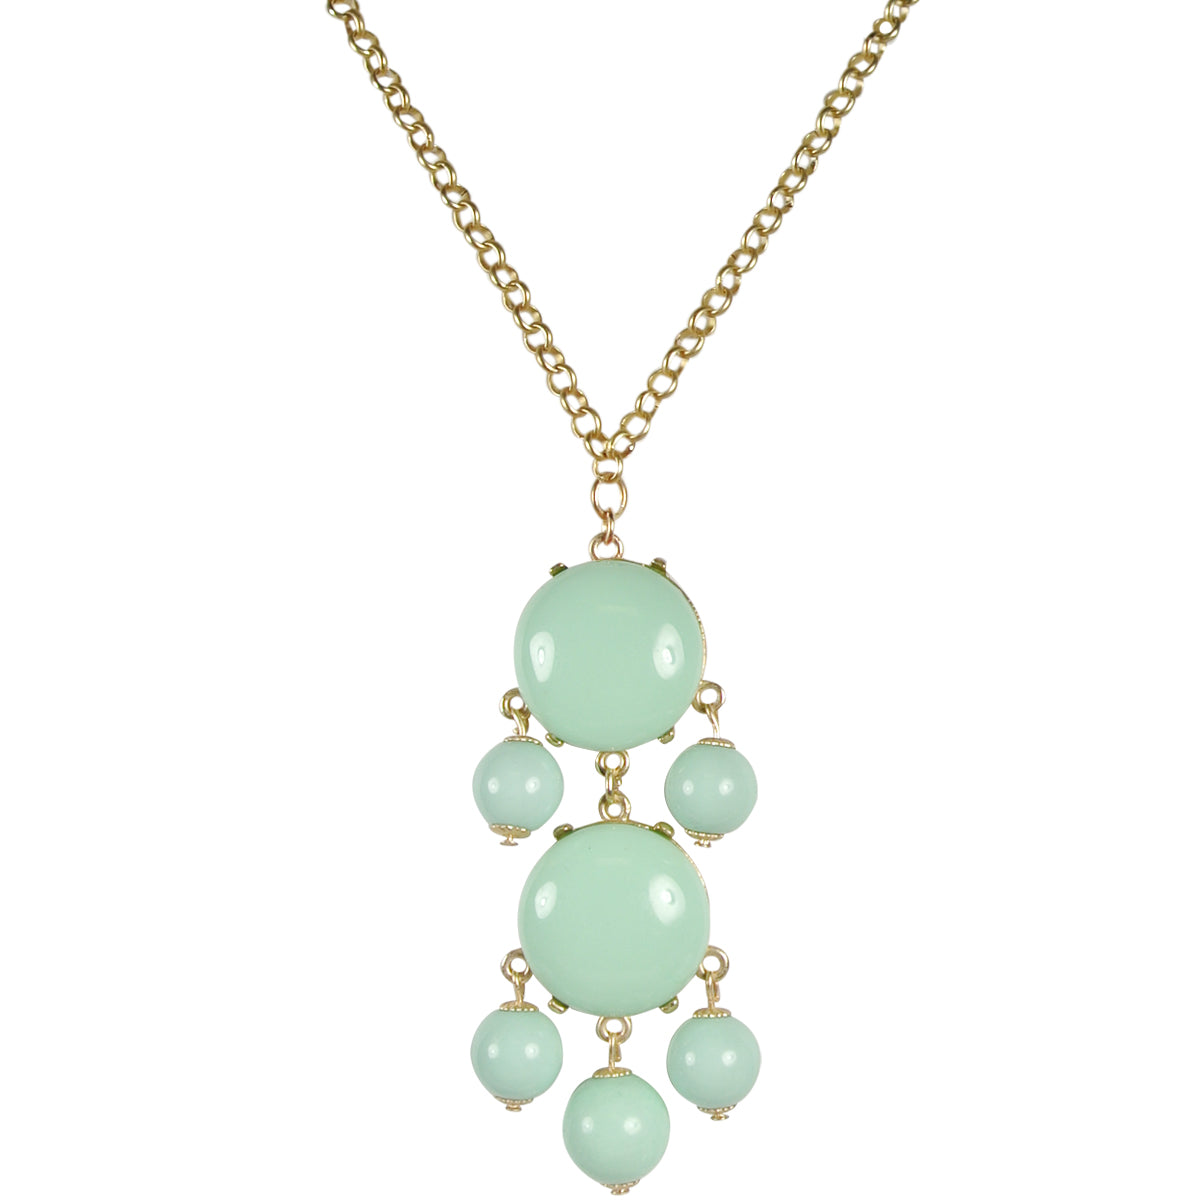 Mint Green Beaded Bubble Pendant Necklace + Orange Drop Stone Necklace [A63876, A64561]